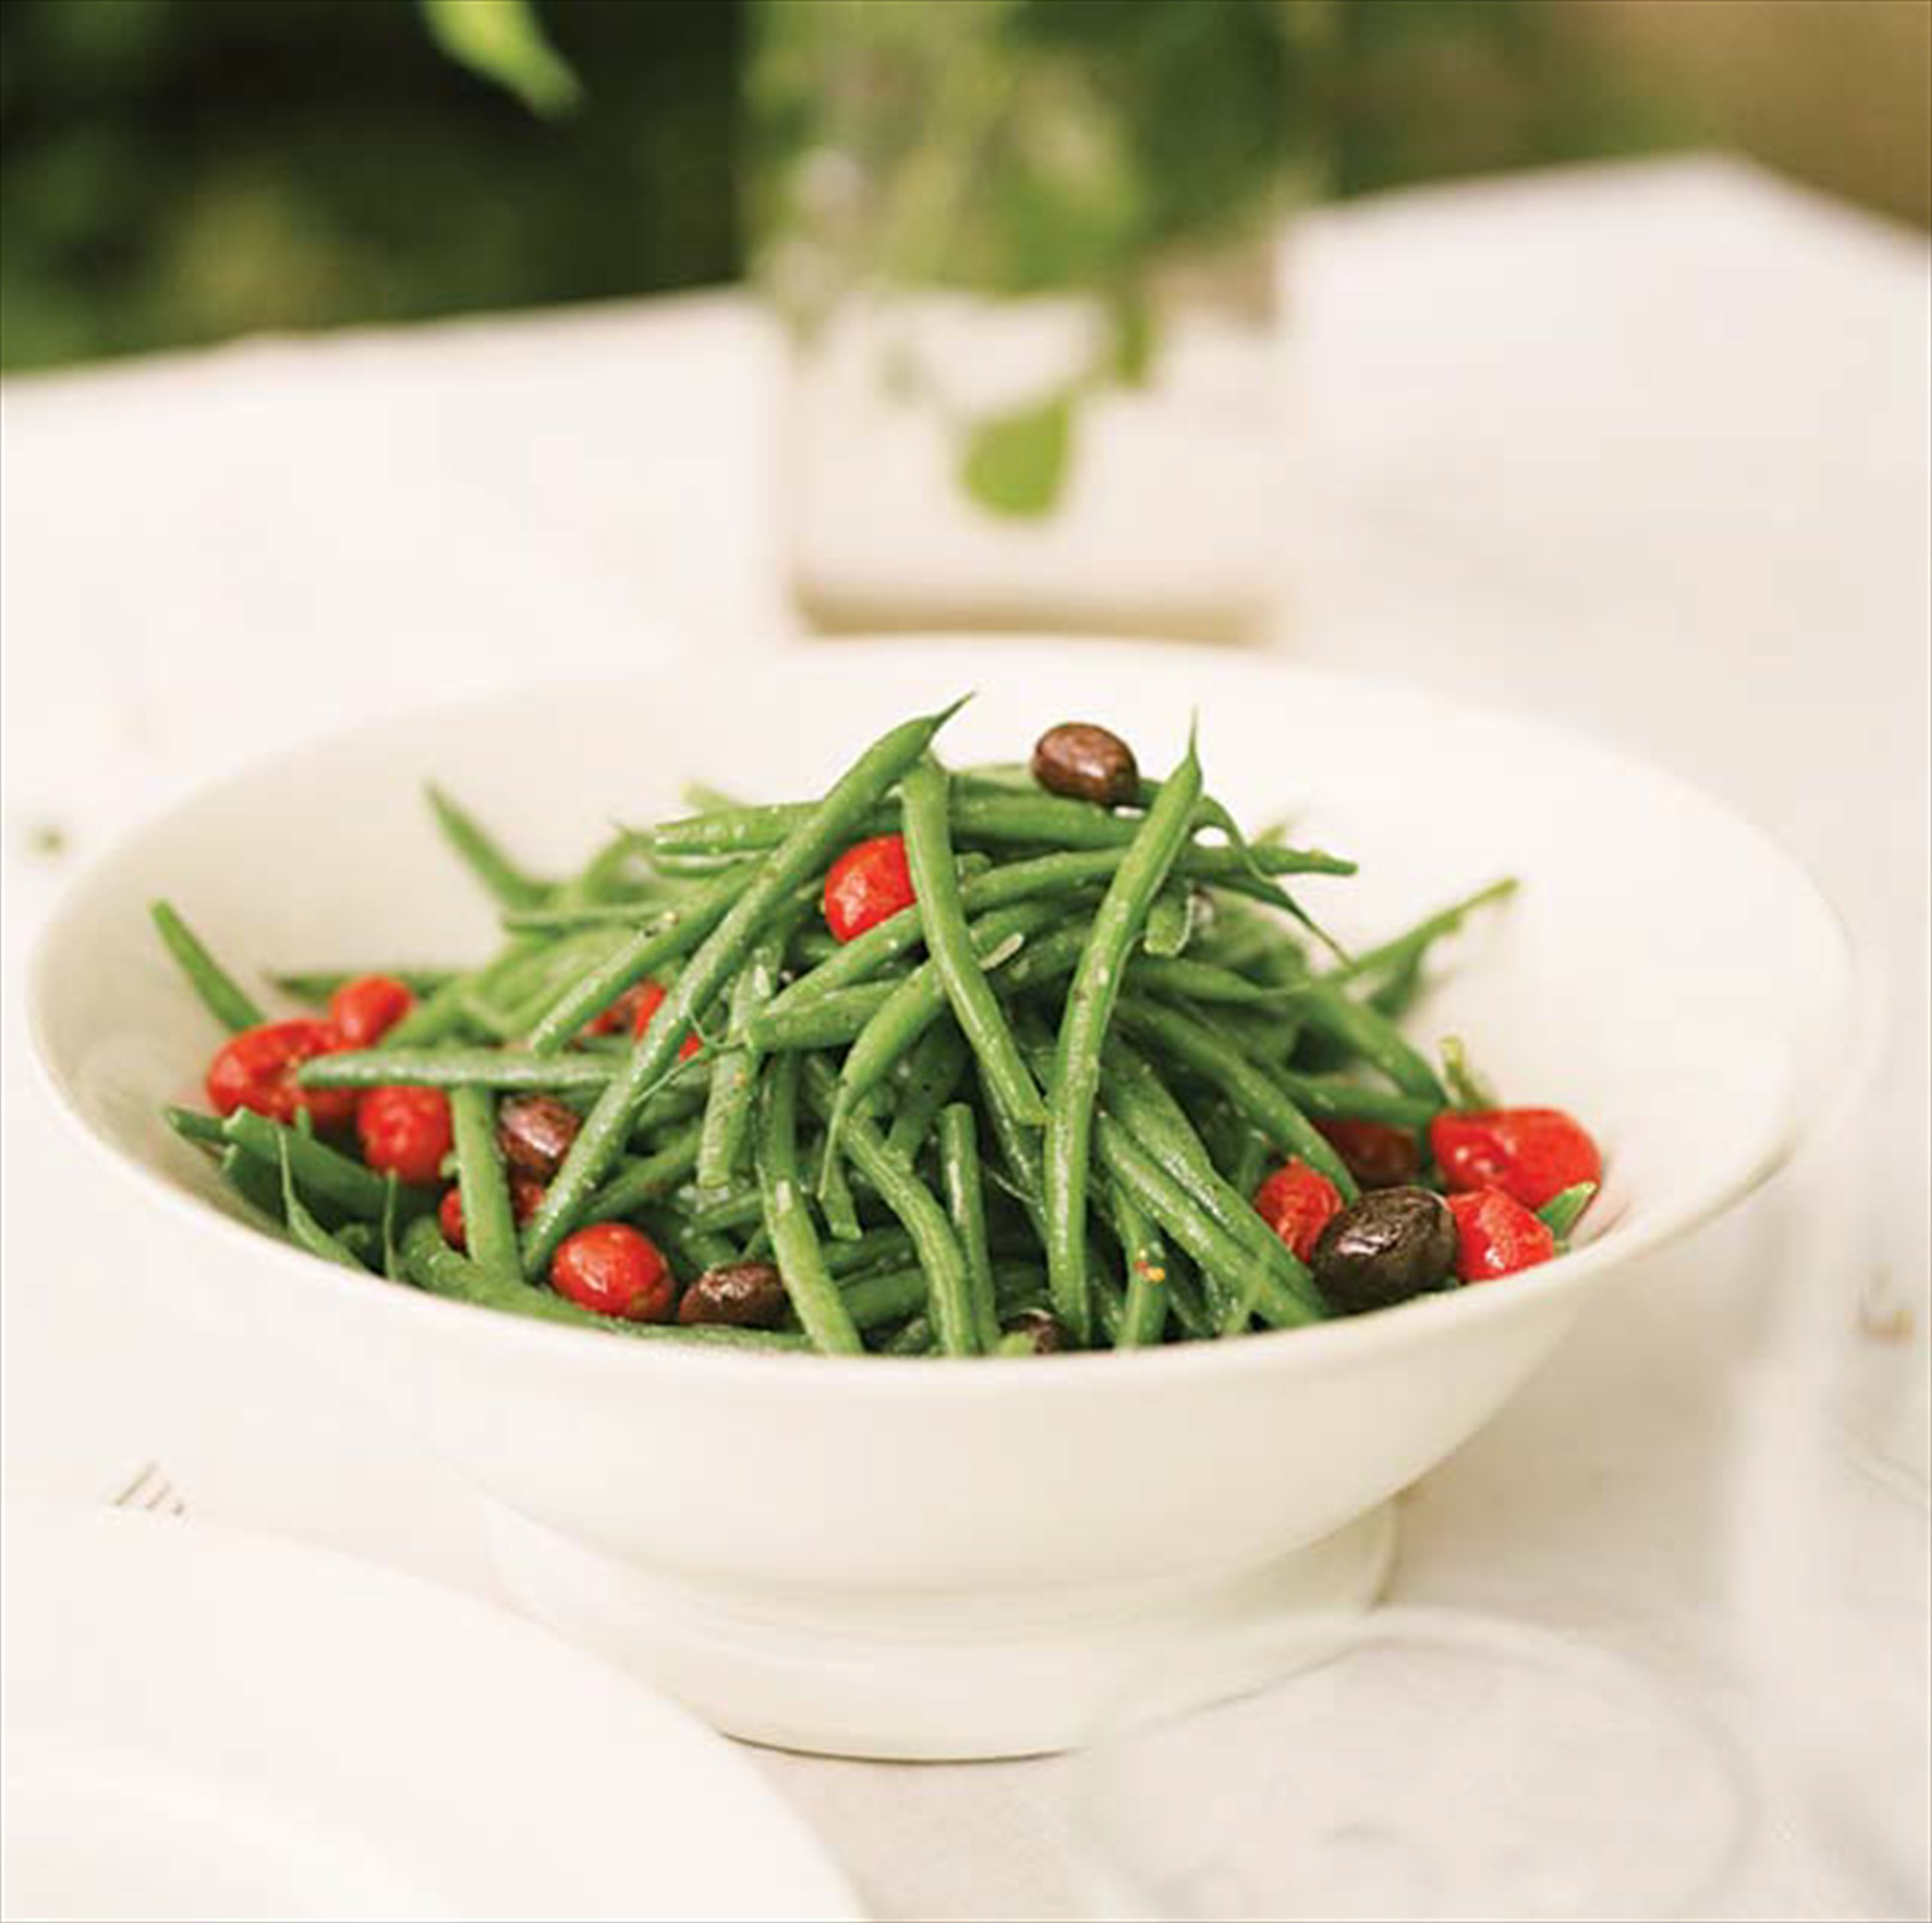 Green beans with roasted tomatoes and olives